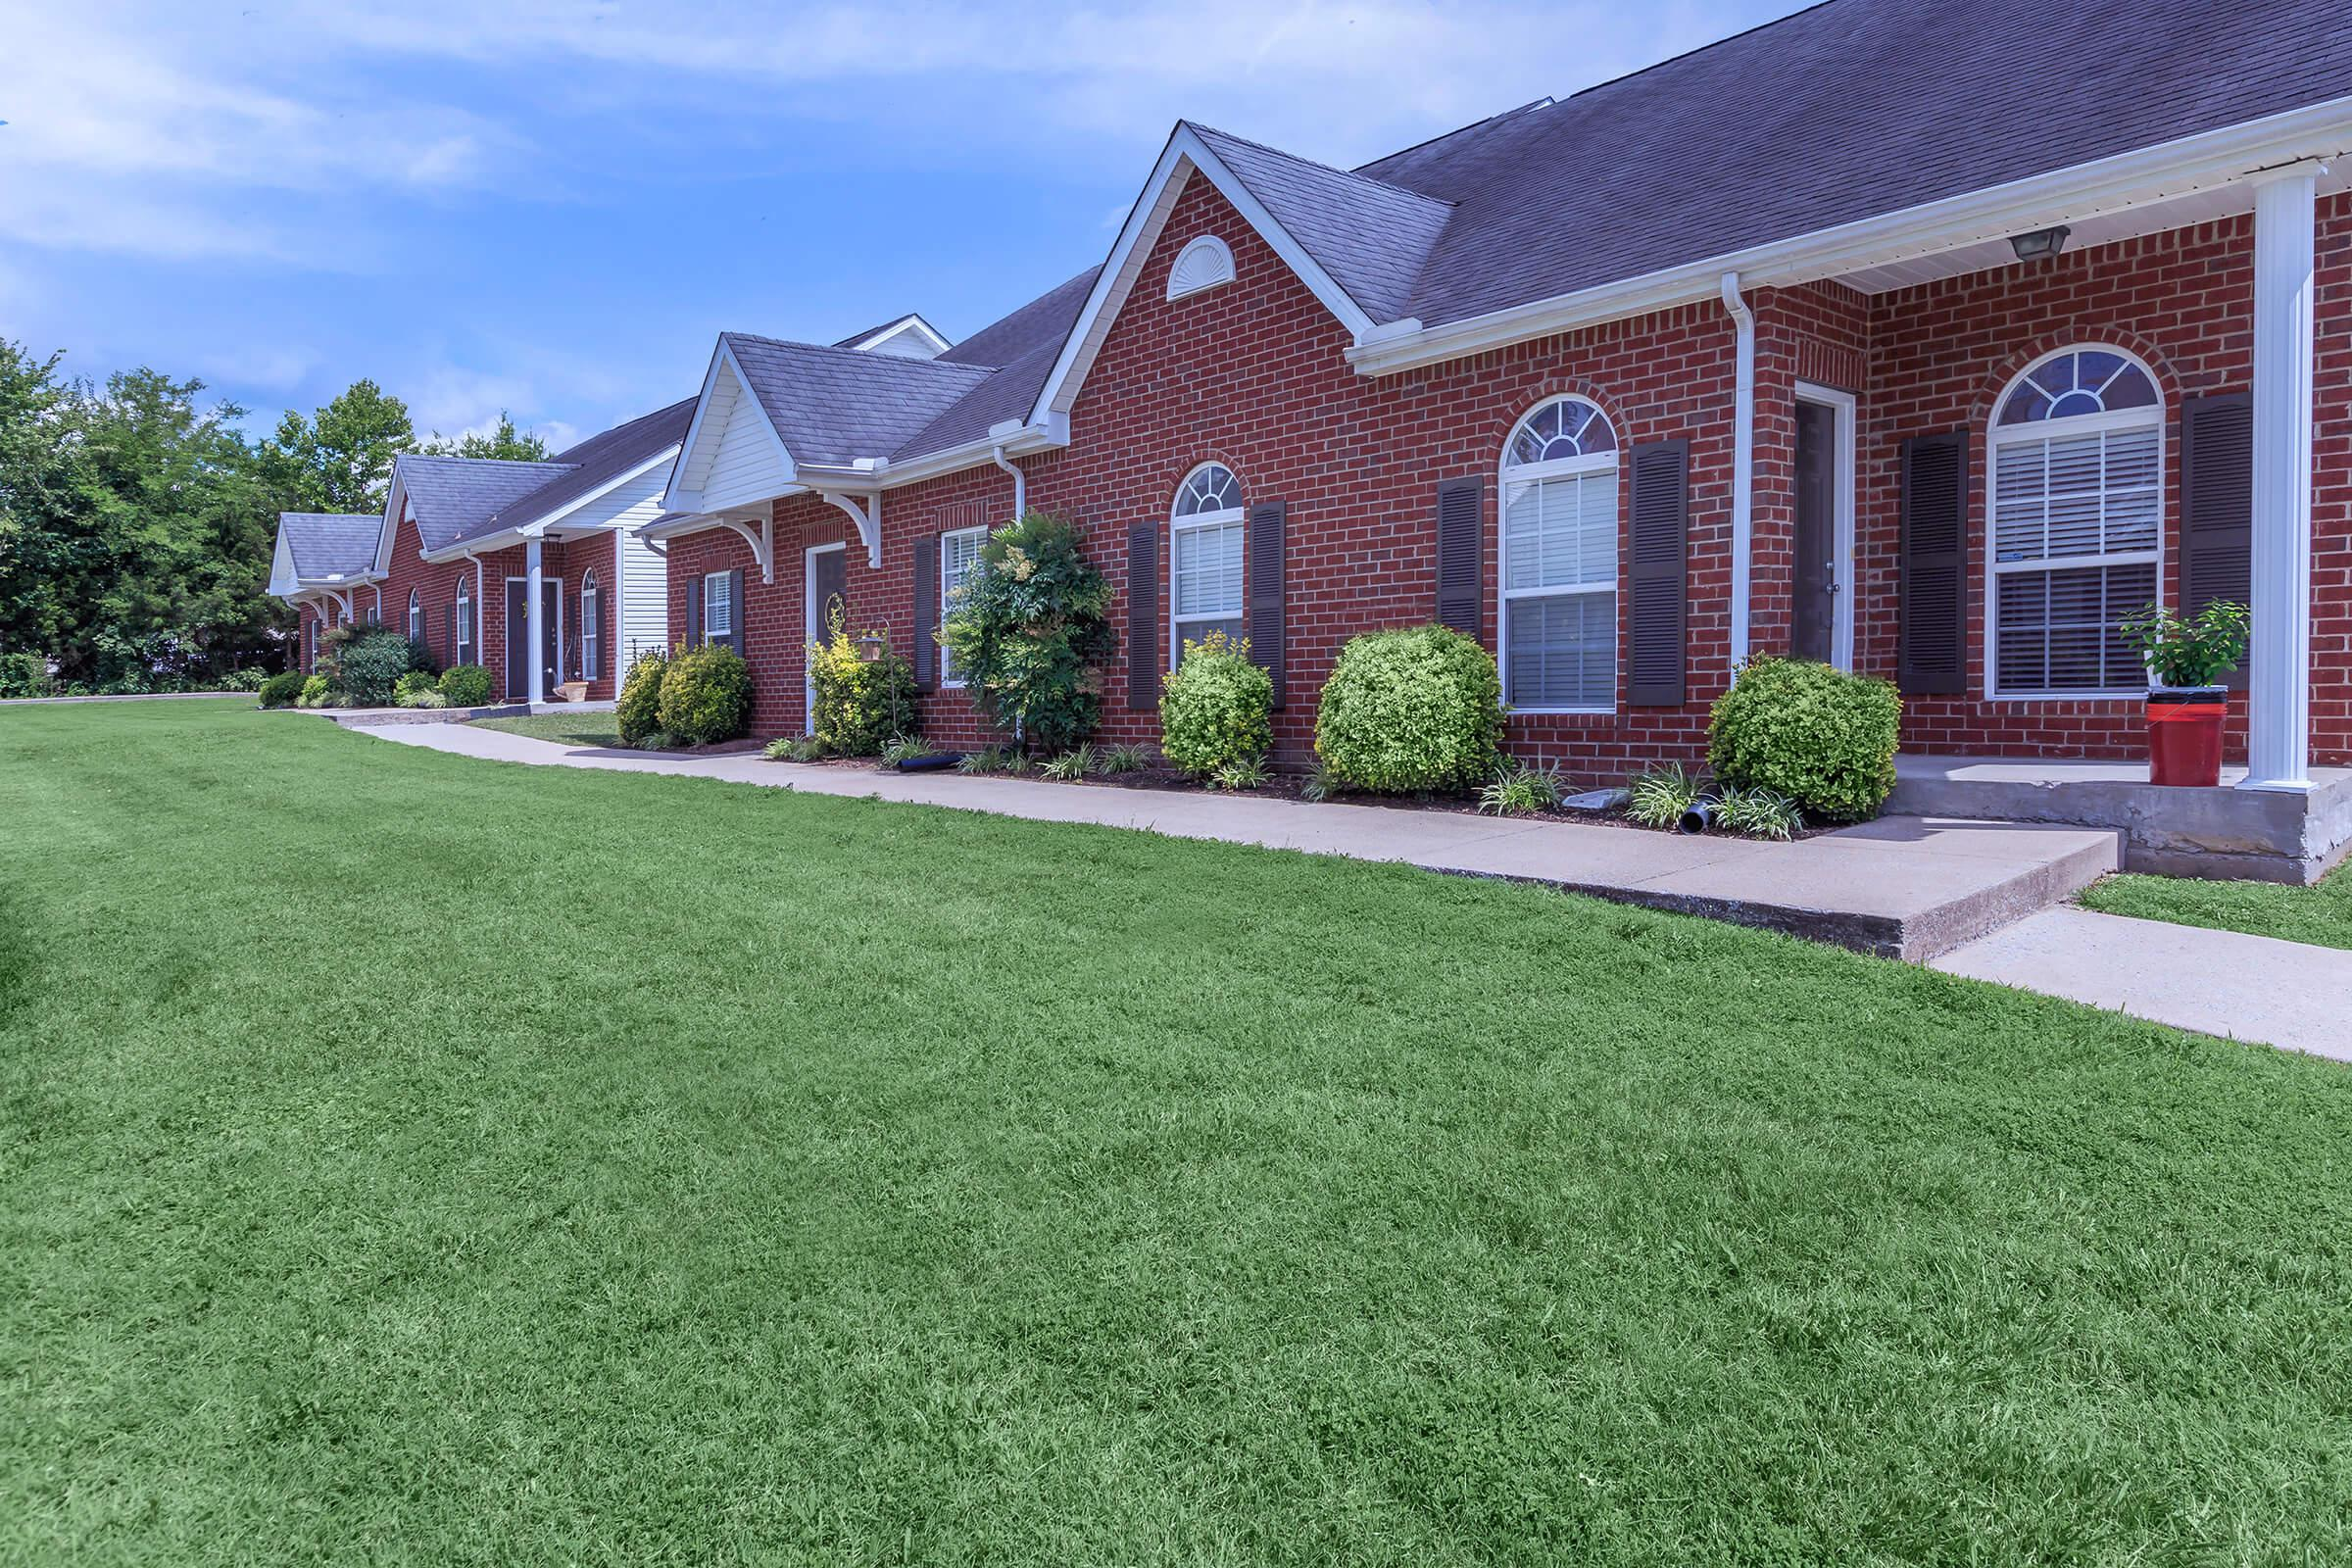 a large brick building with green grass in front of a house